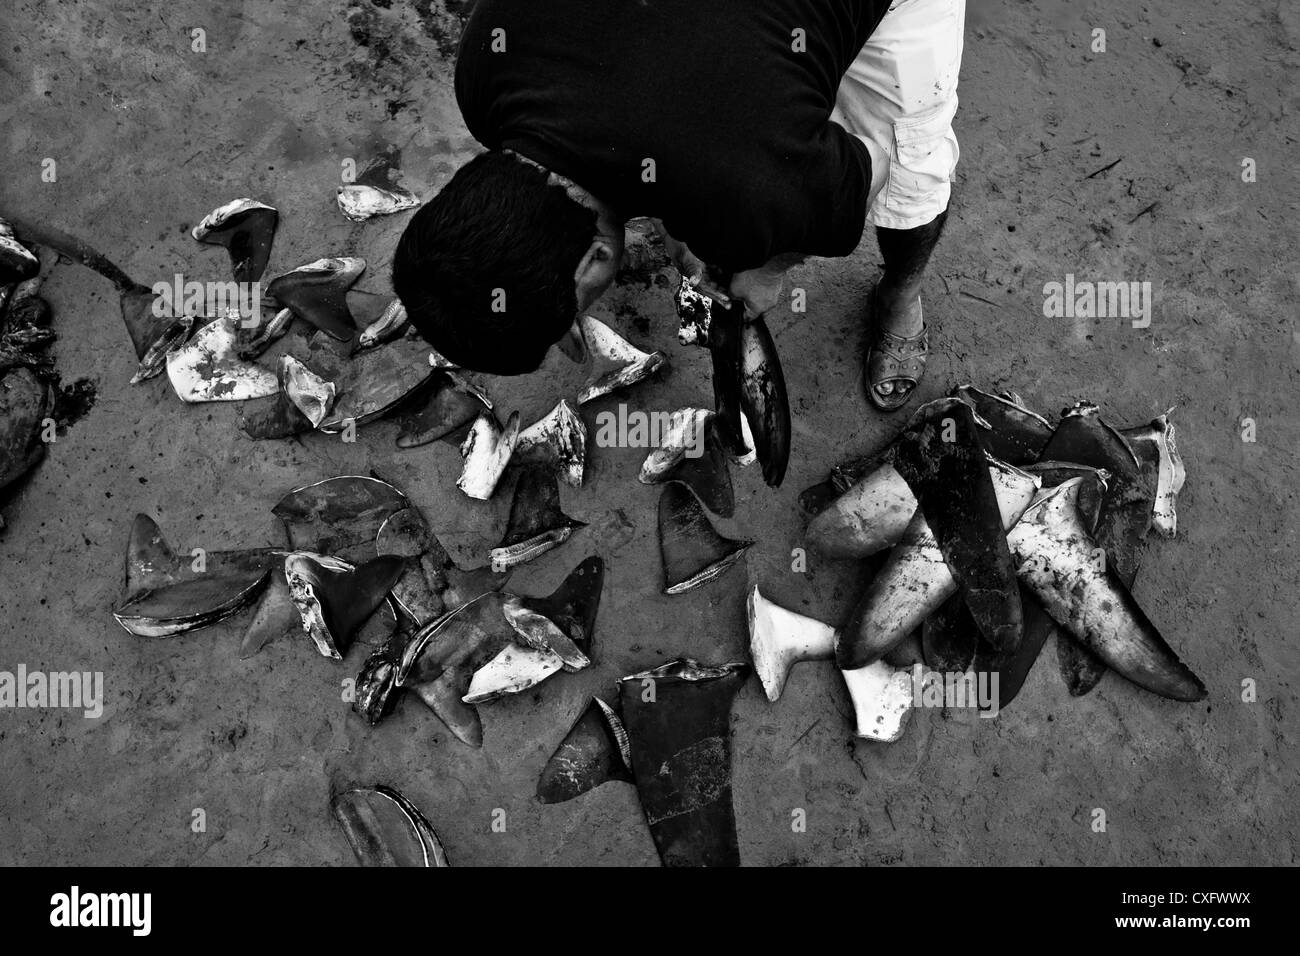 A shark fin buyer looks at a pile of shark fins on the beach of Puerto Lopez, Ecuador. - Stock Image